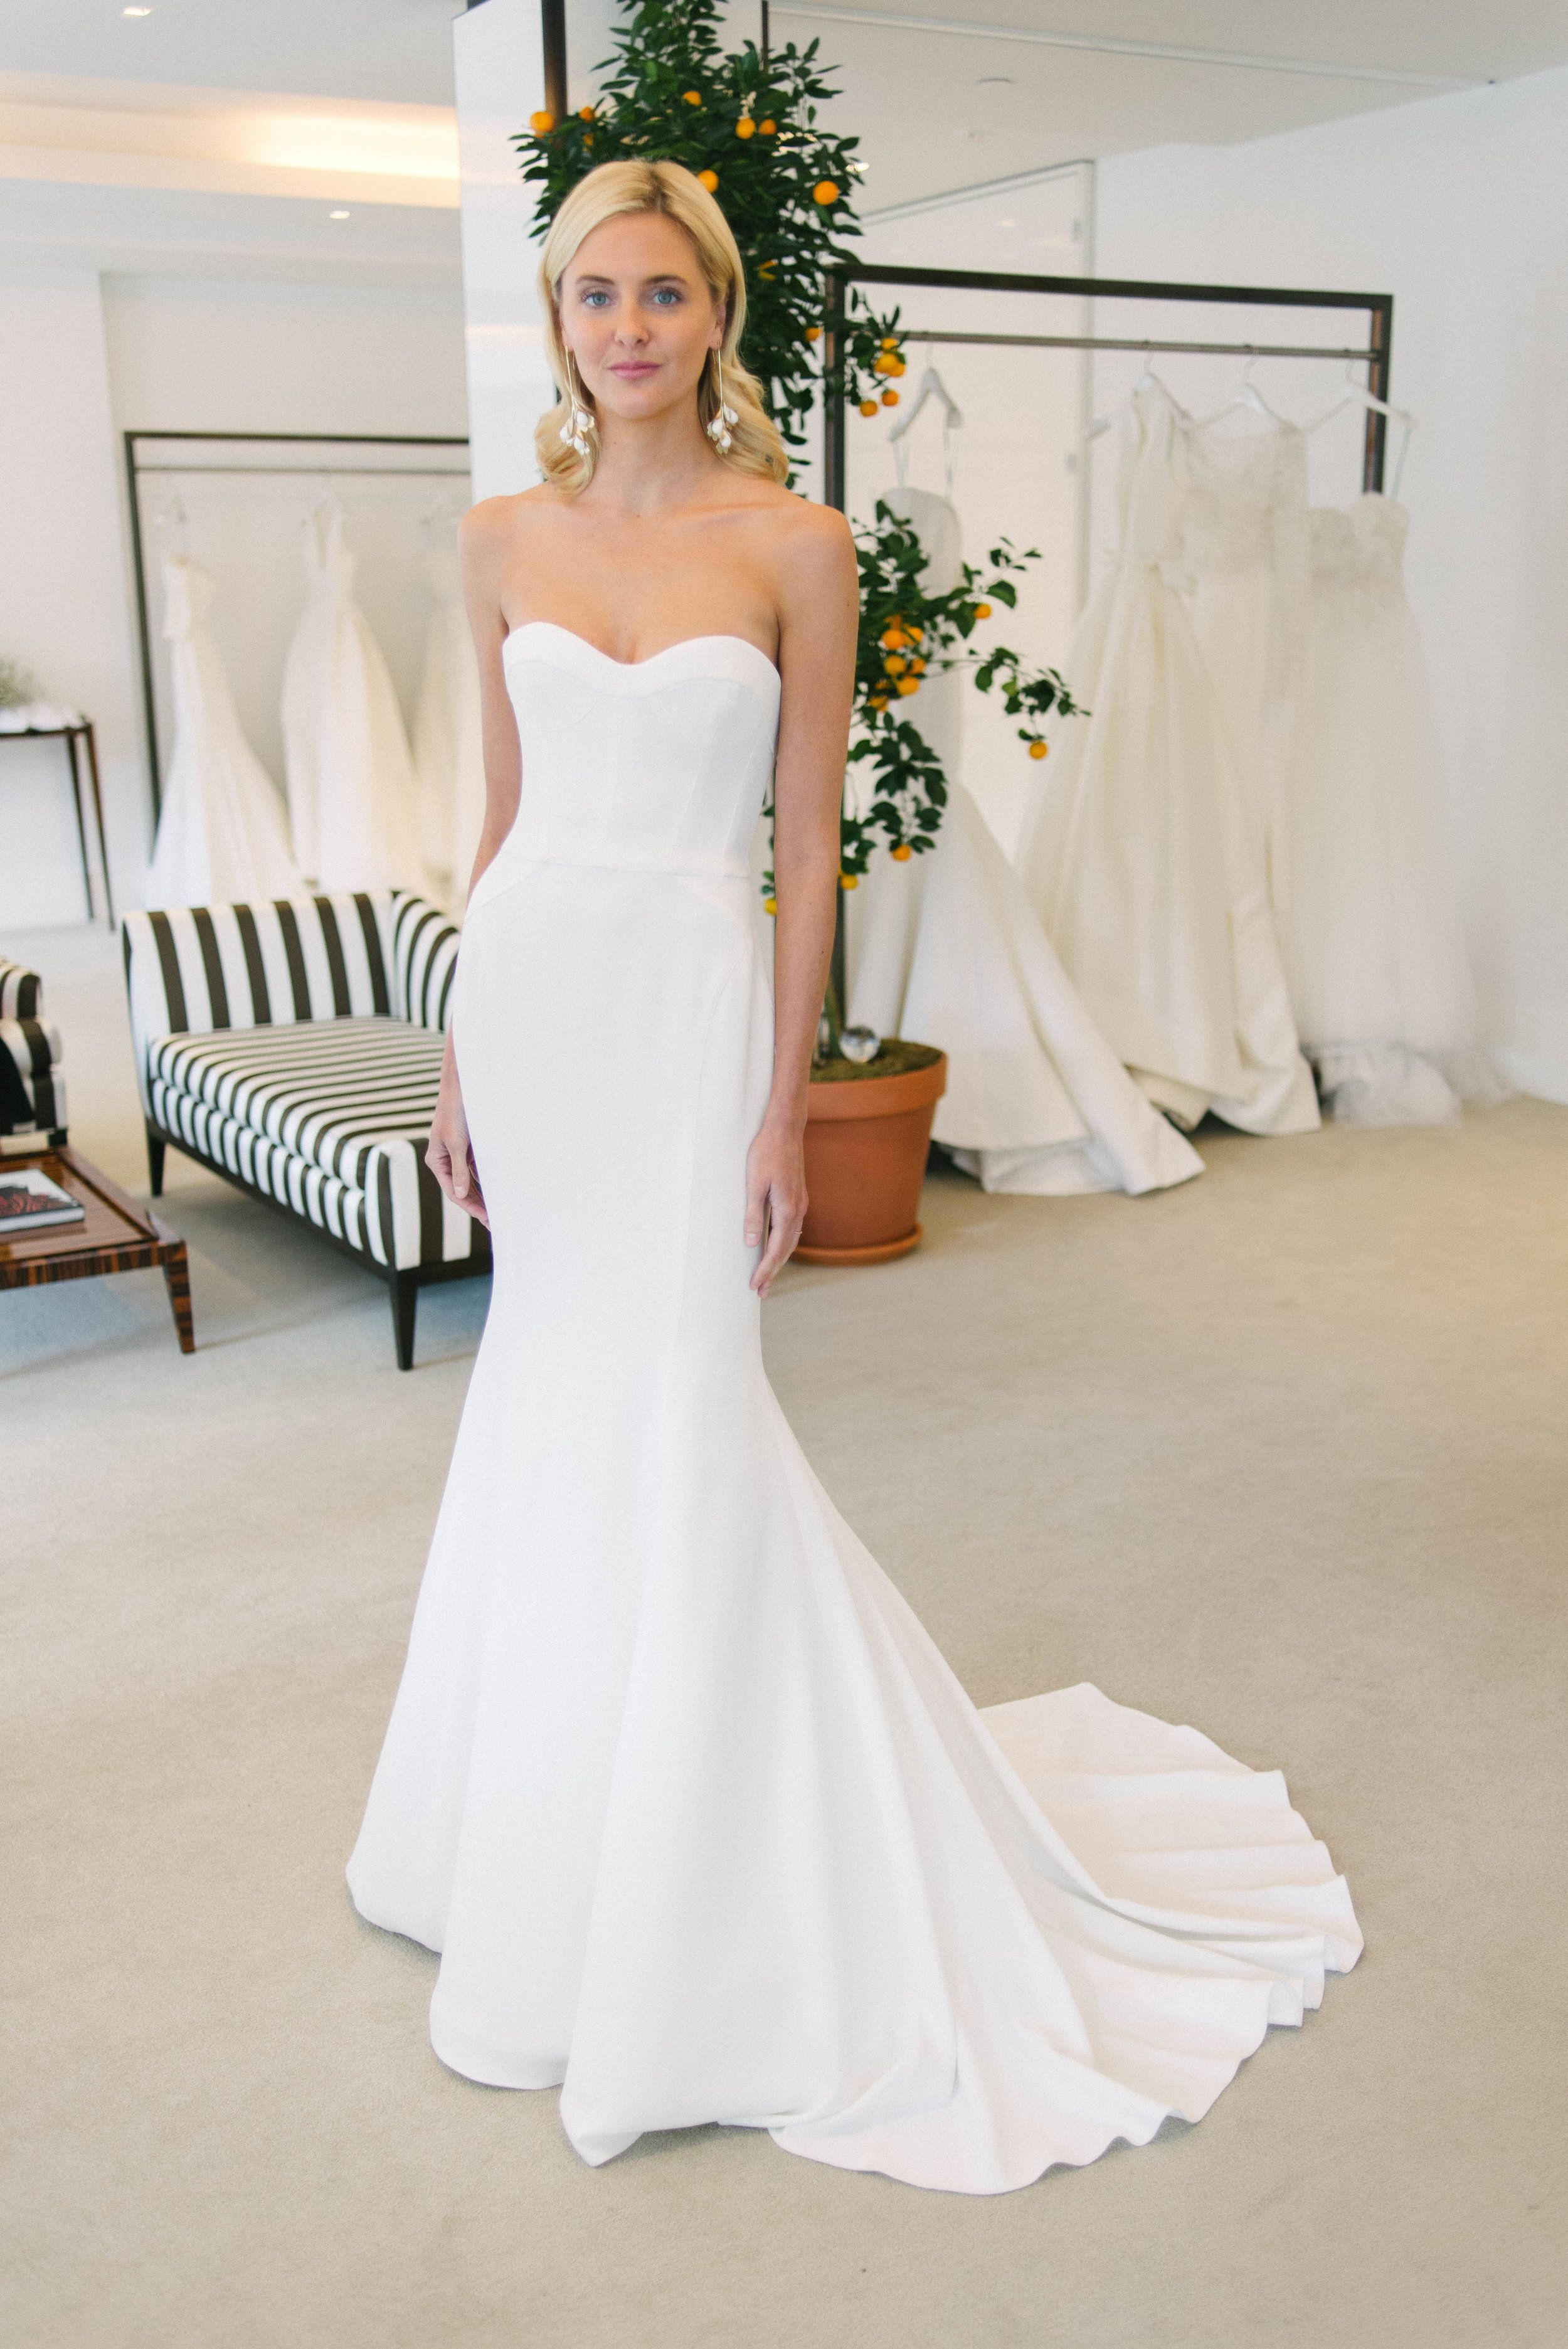 Carolina Herrera Spring 2020 Collection Preview Wedding Dresses